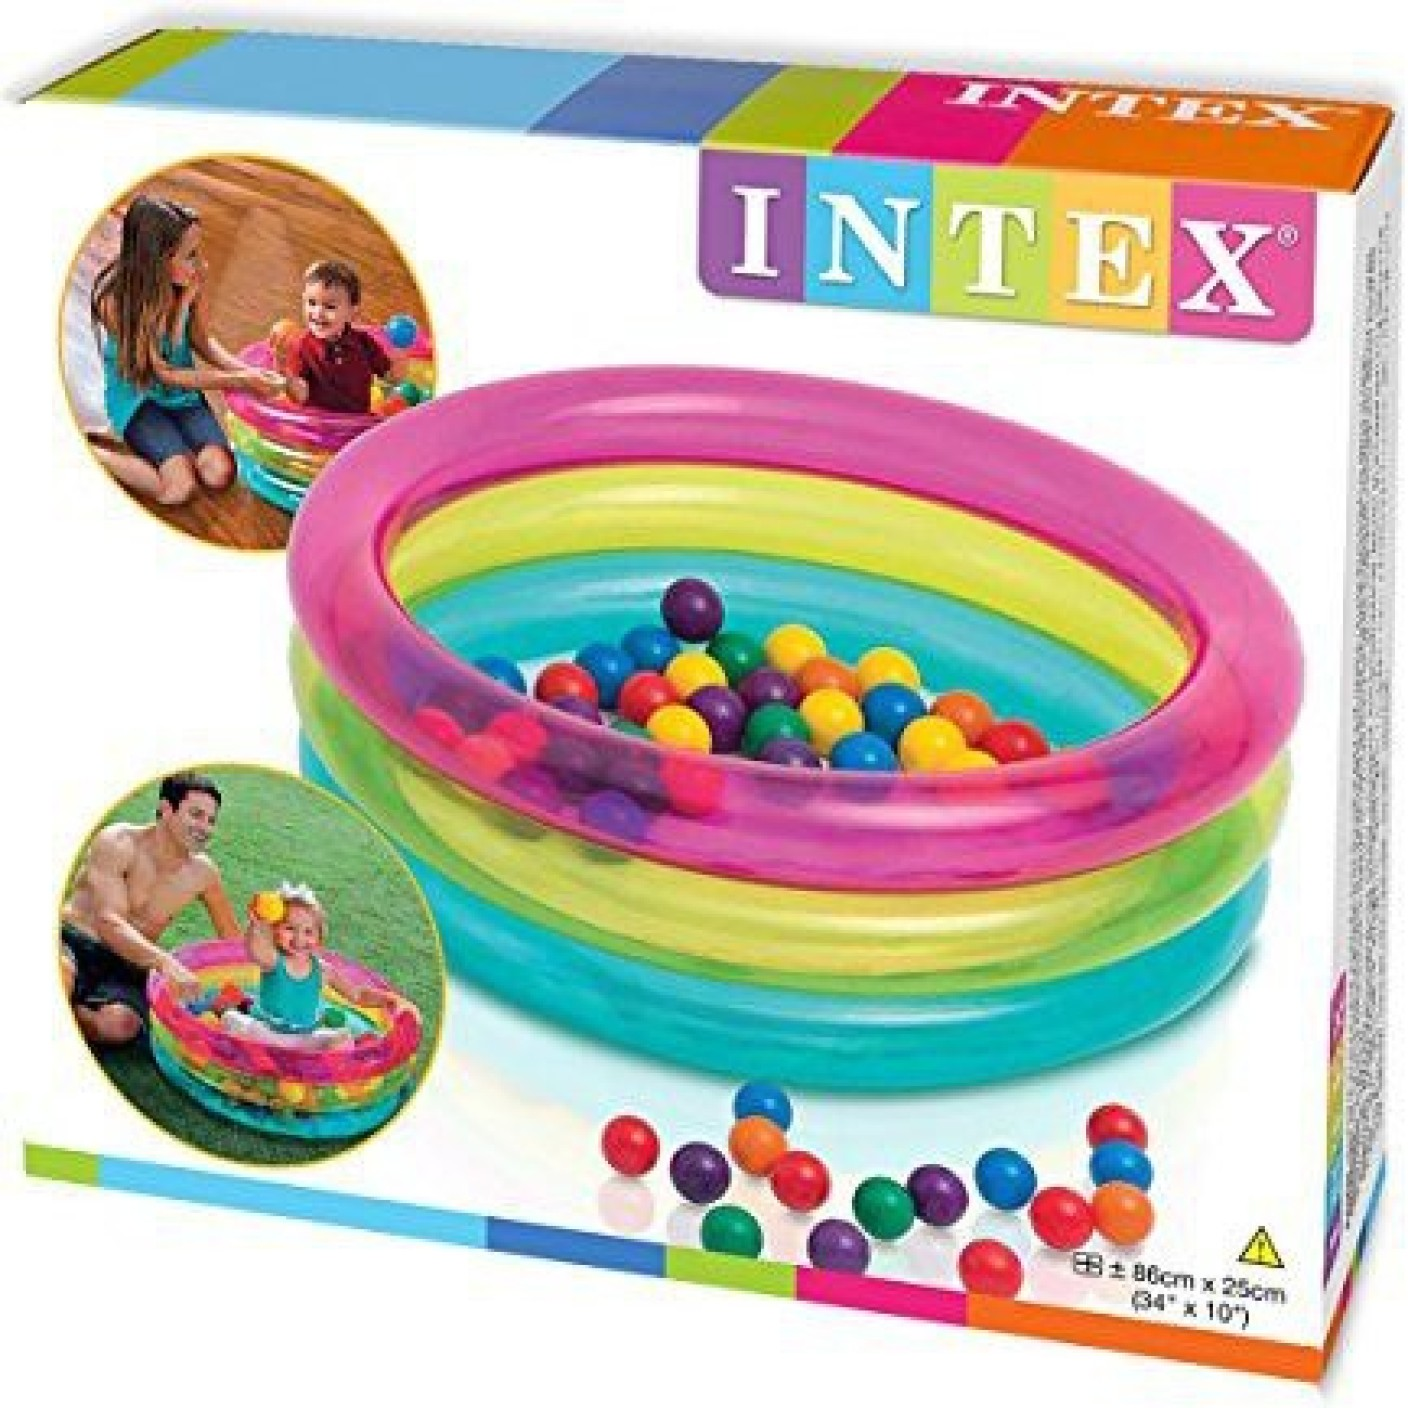 Intex Baby Ball Pit Inflatable Pool Price In India Buy Intex Baby Ball Pit Inflatable Pool